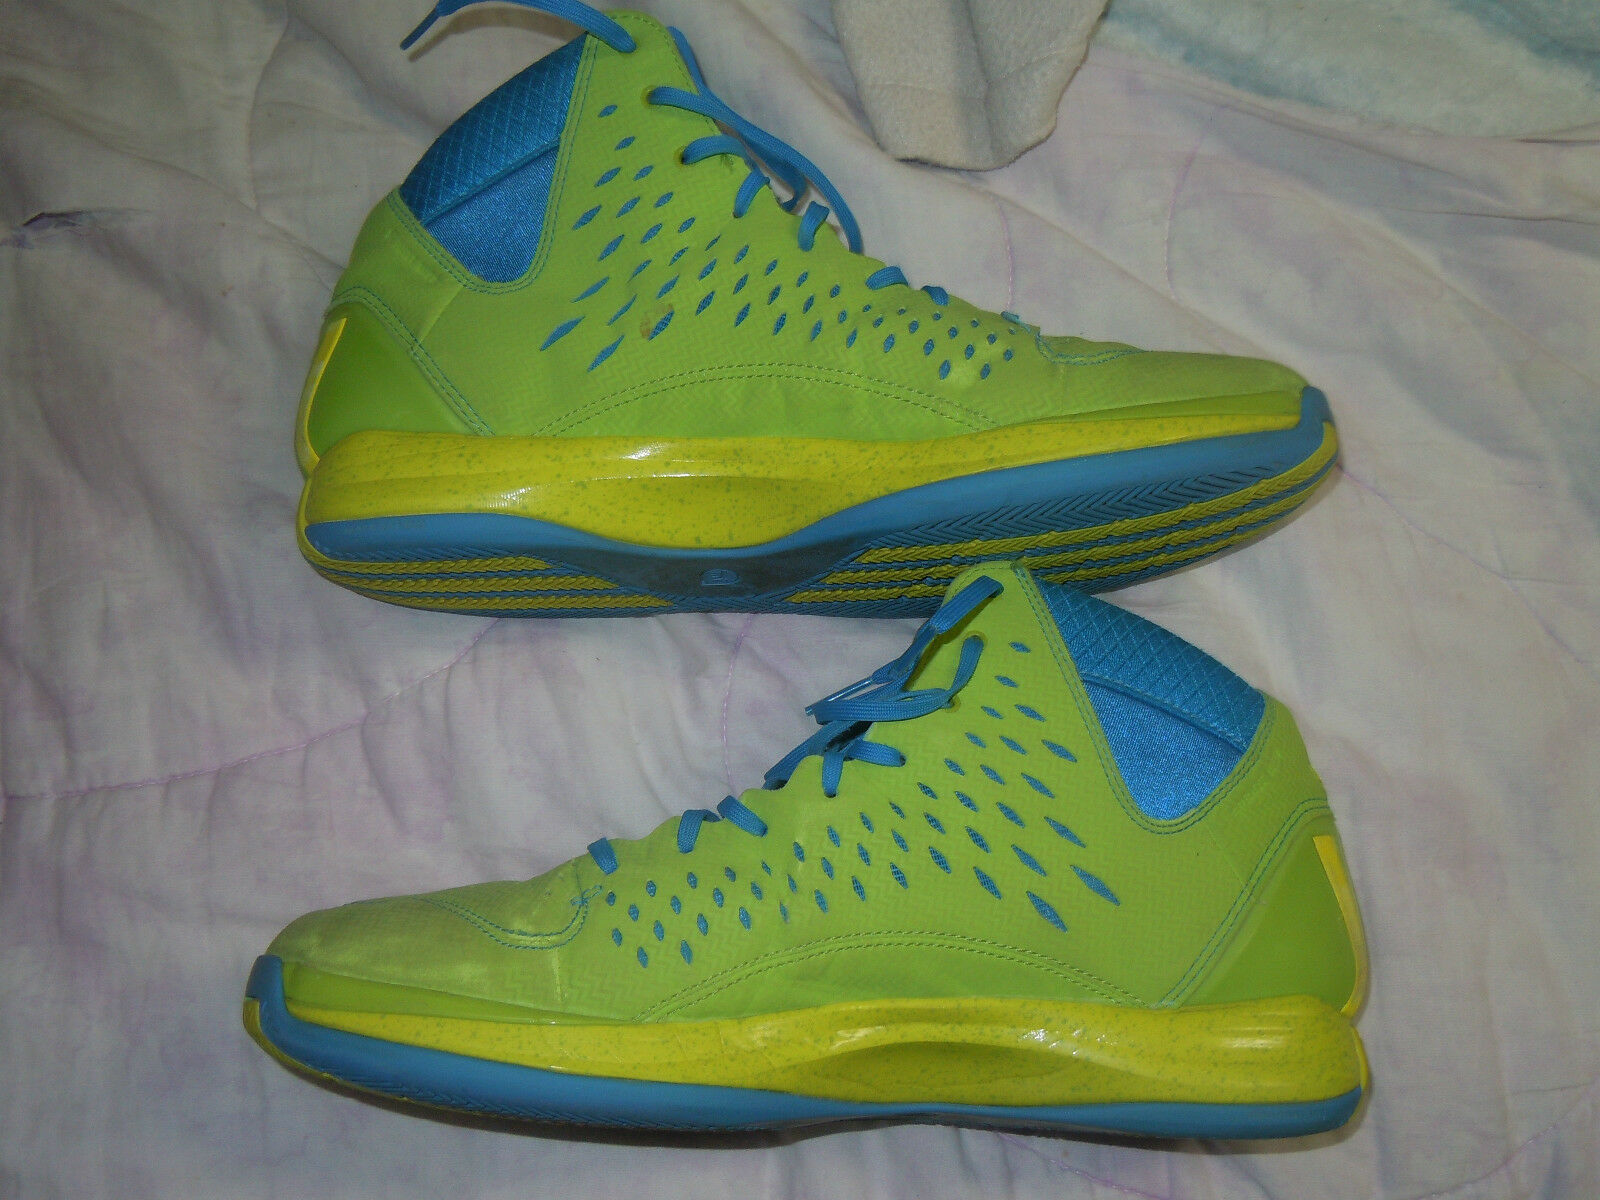 best sneakers db3cc 6058e ADIDAS DERRICK ROSE- SIZE 13-SOUTH 13-SOUTH 13-SOUTH SIDE-